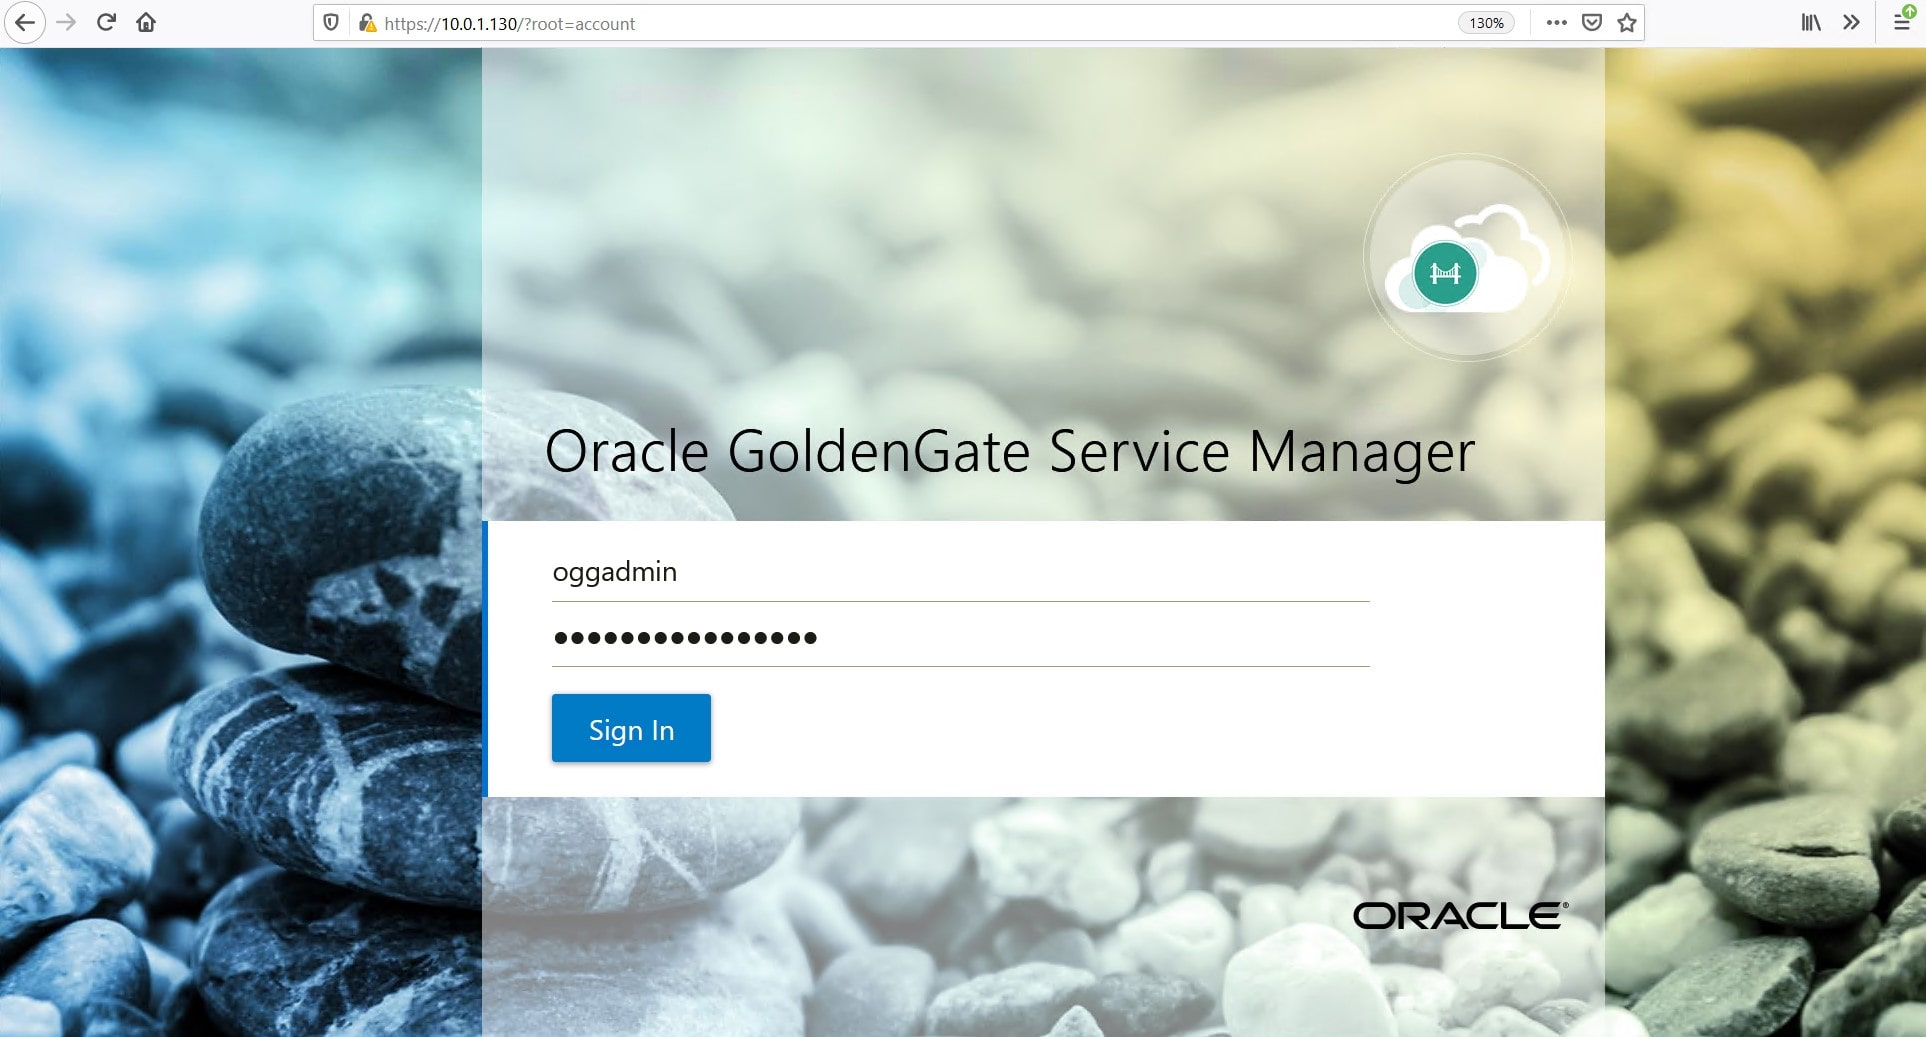 The log in prompt of Oracle GoldenGate